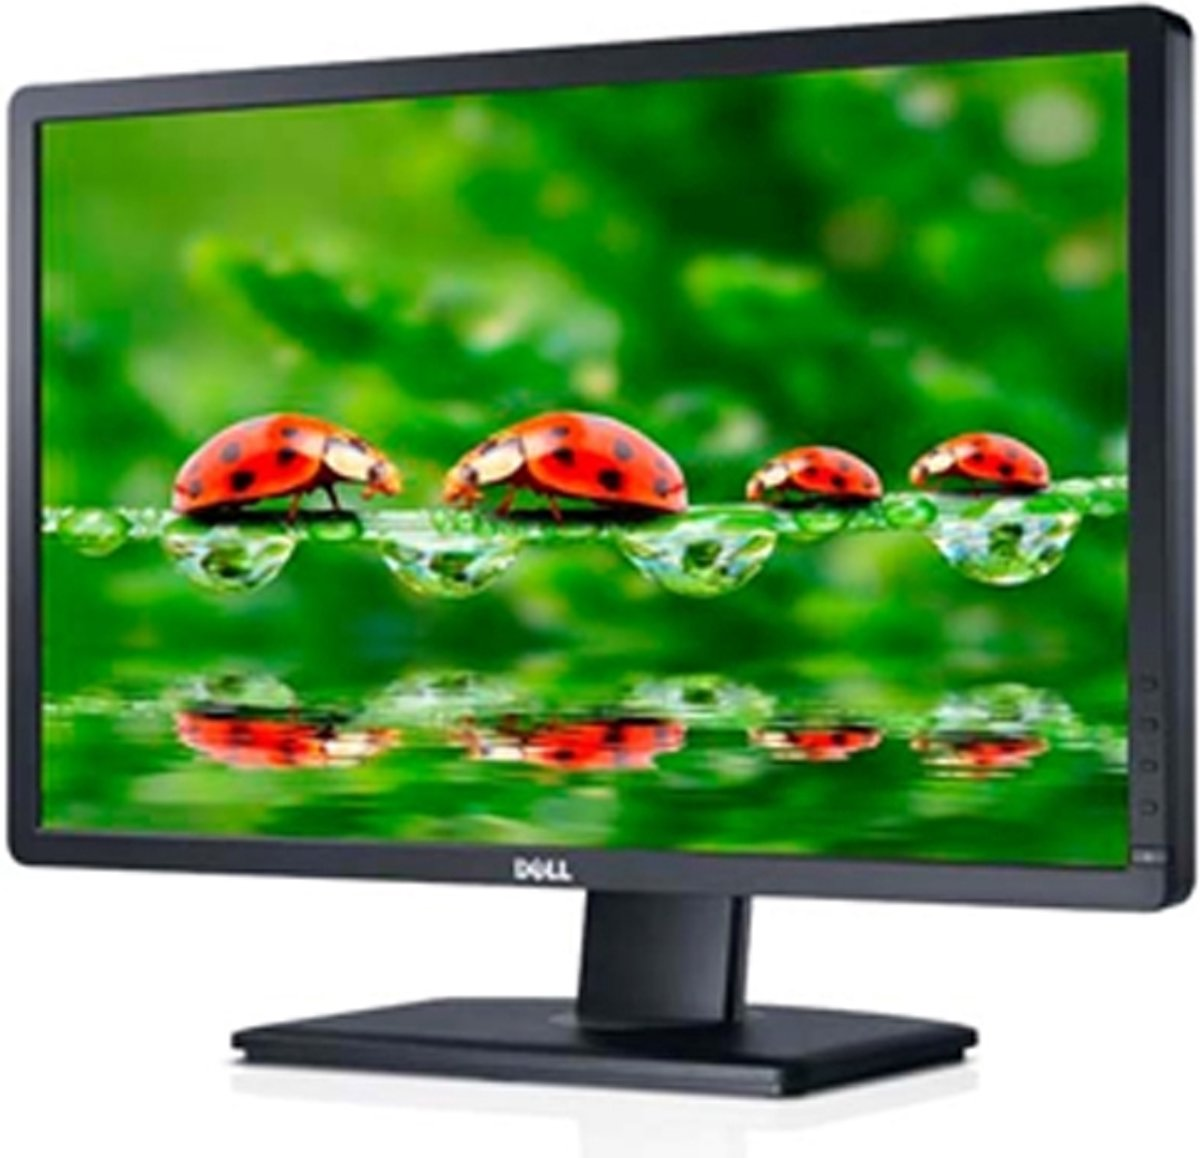 Dell P2412H - Monitor - 24 inch Monitor - REFURBISHED